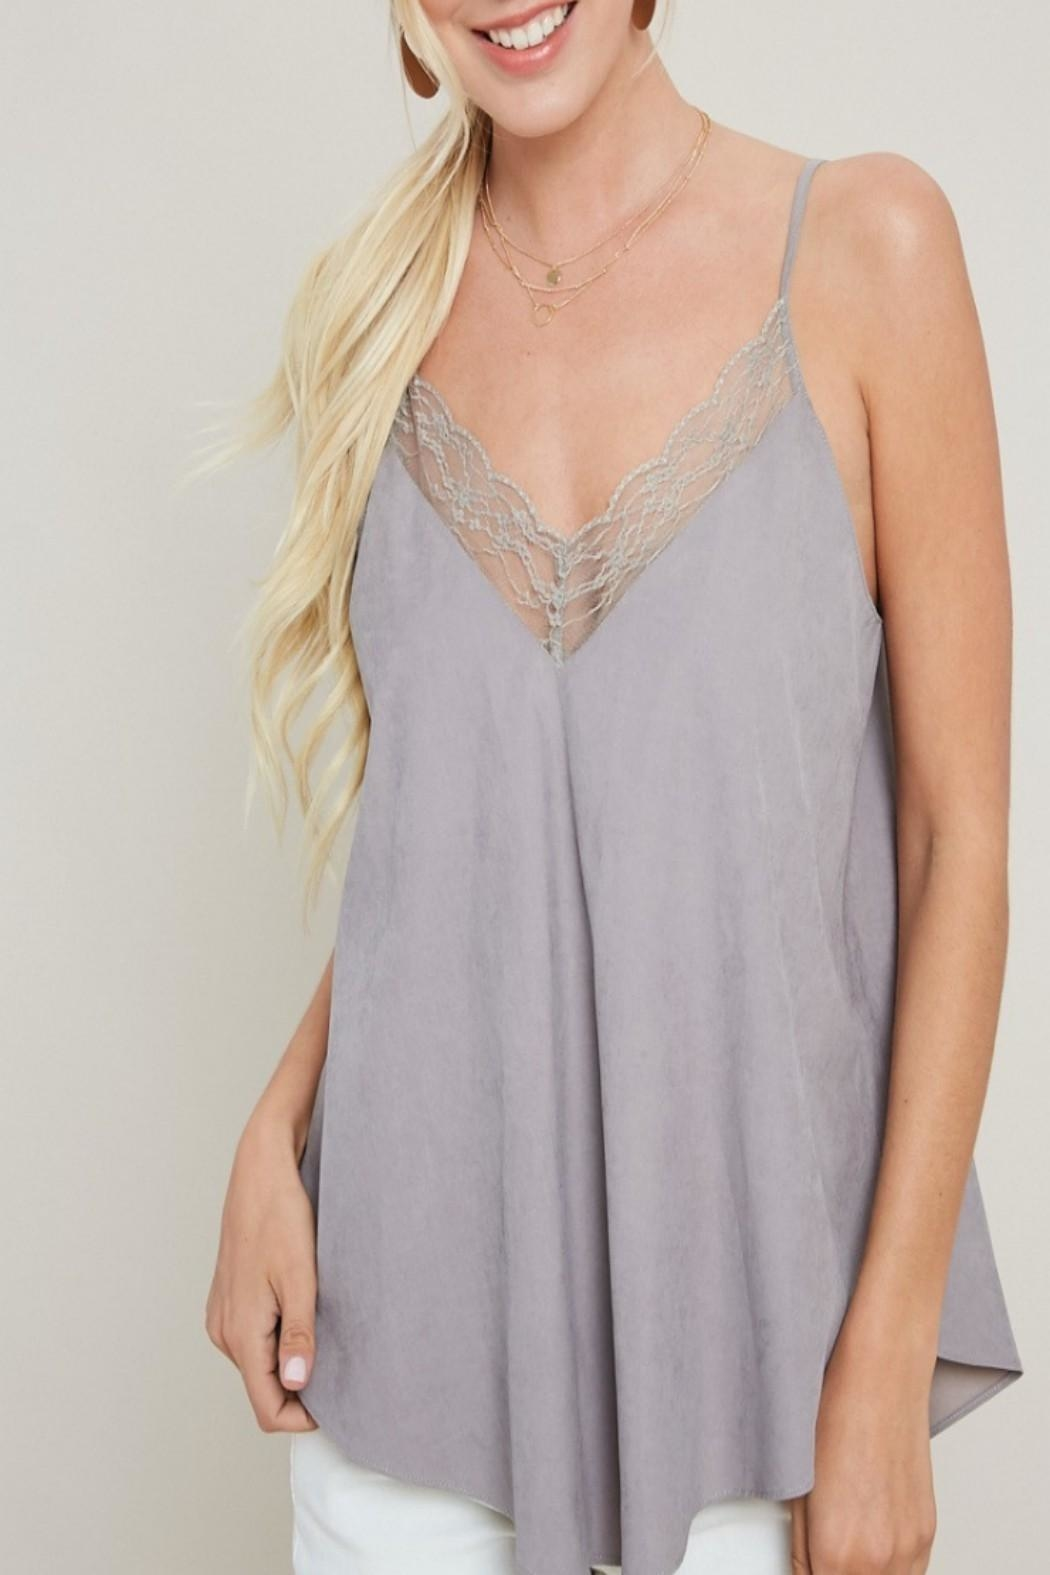 eesome Lace Cami Top - Main Image